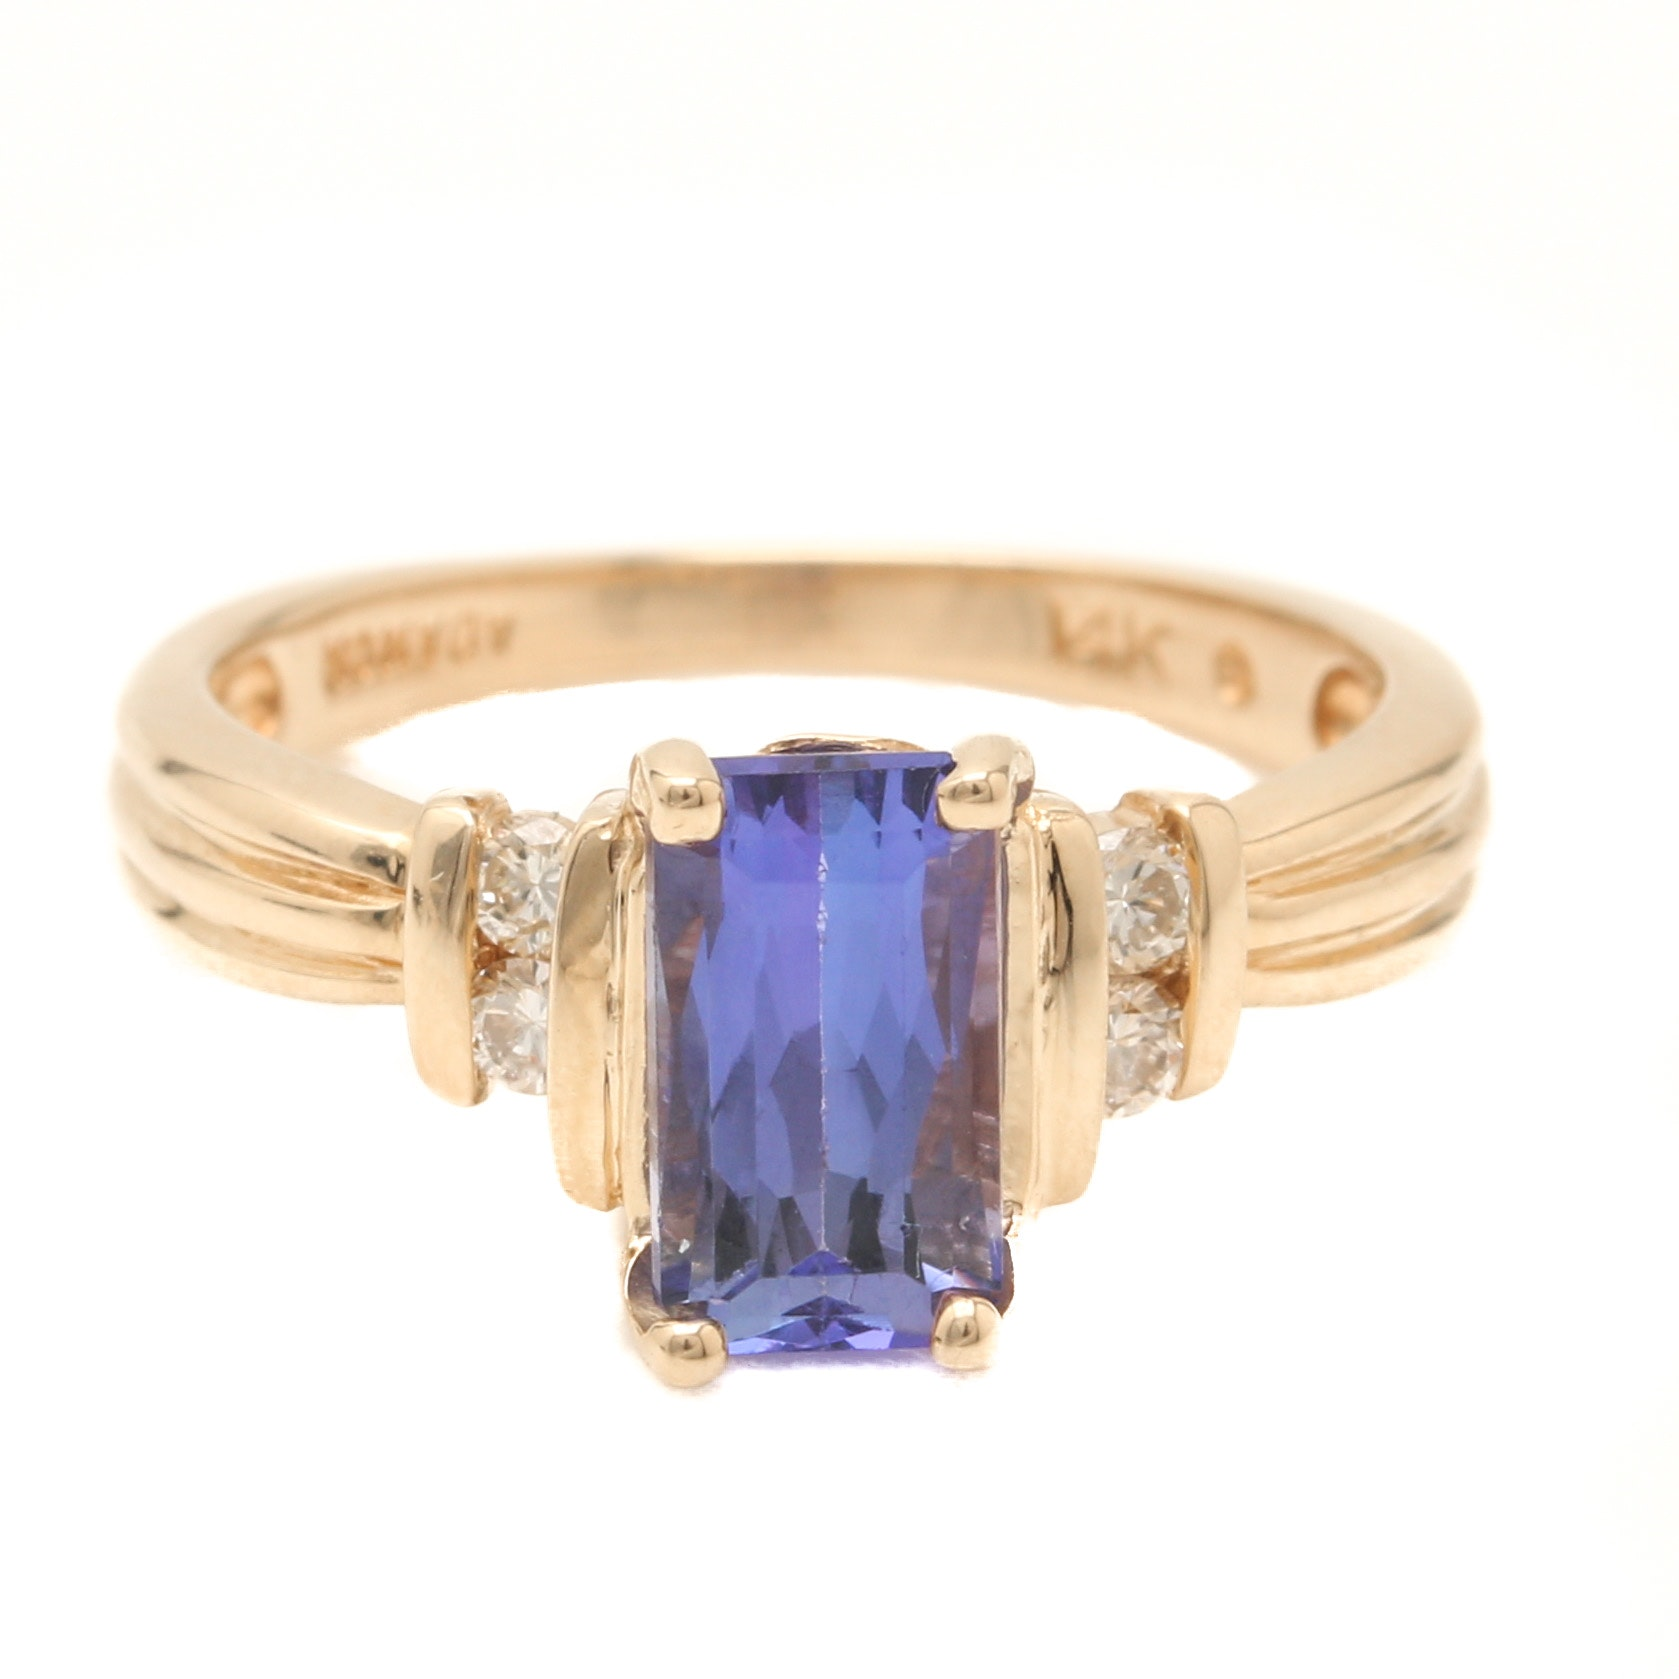 Adamor 14K Yellow Gold Tanzanite and Diamond Ring